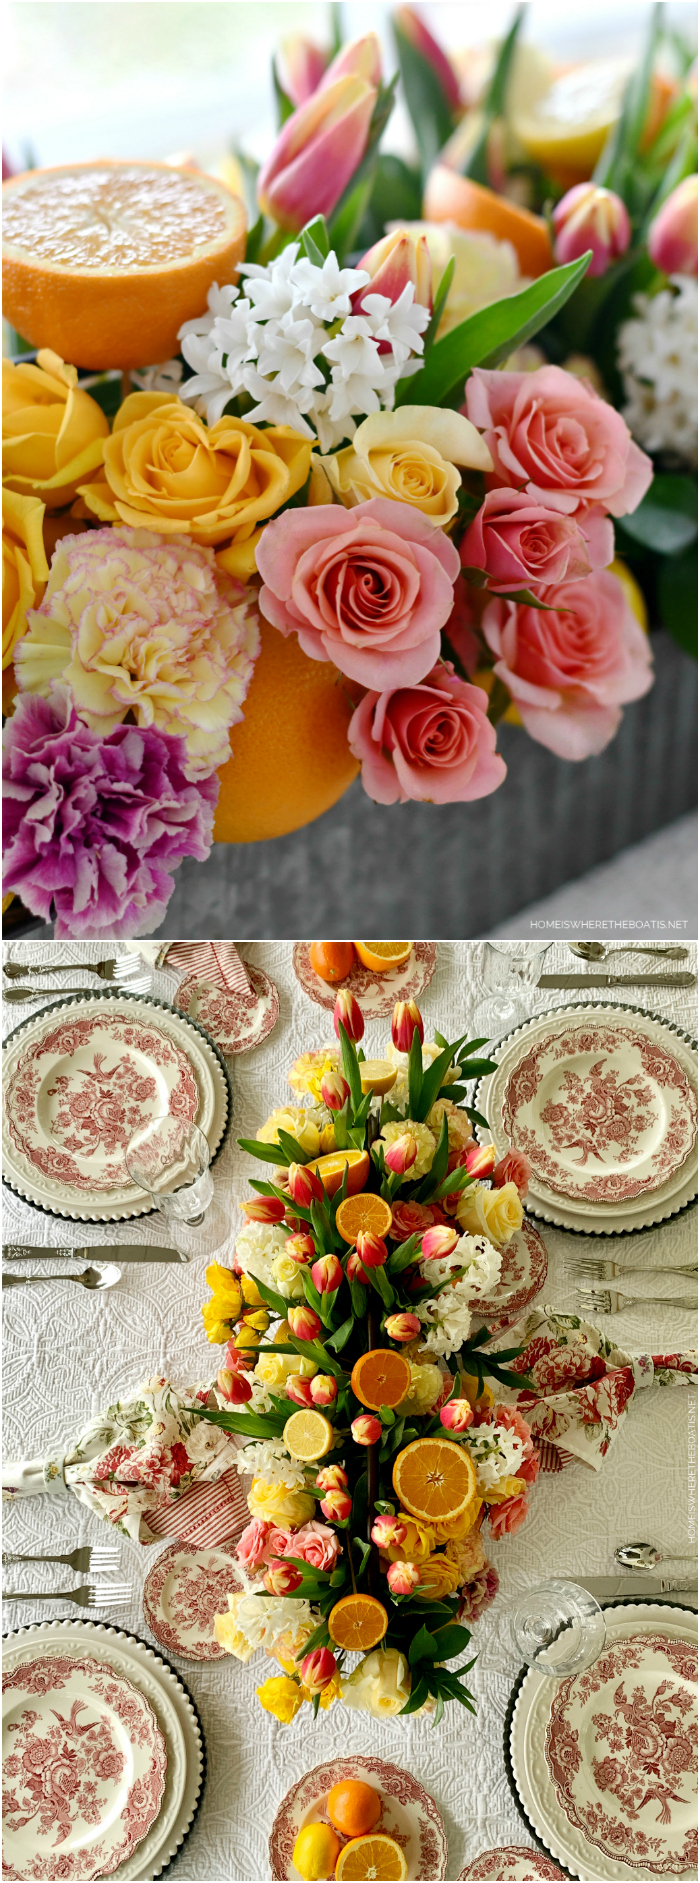 Floral Arrangement with Tulips, Roses and Citrus + Pink Transferware Table | ©homeiswheretheboatis.net #flowers #DIY #tablescapes #citrus